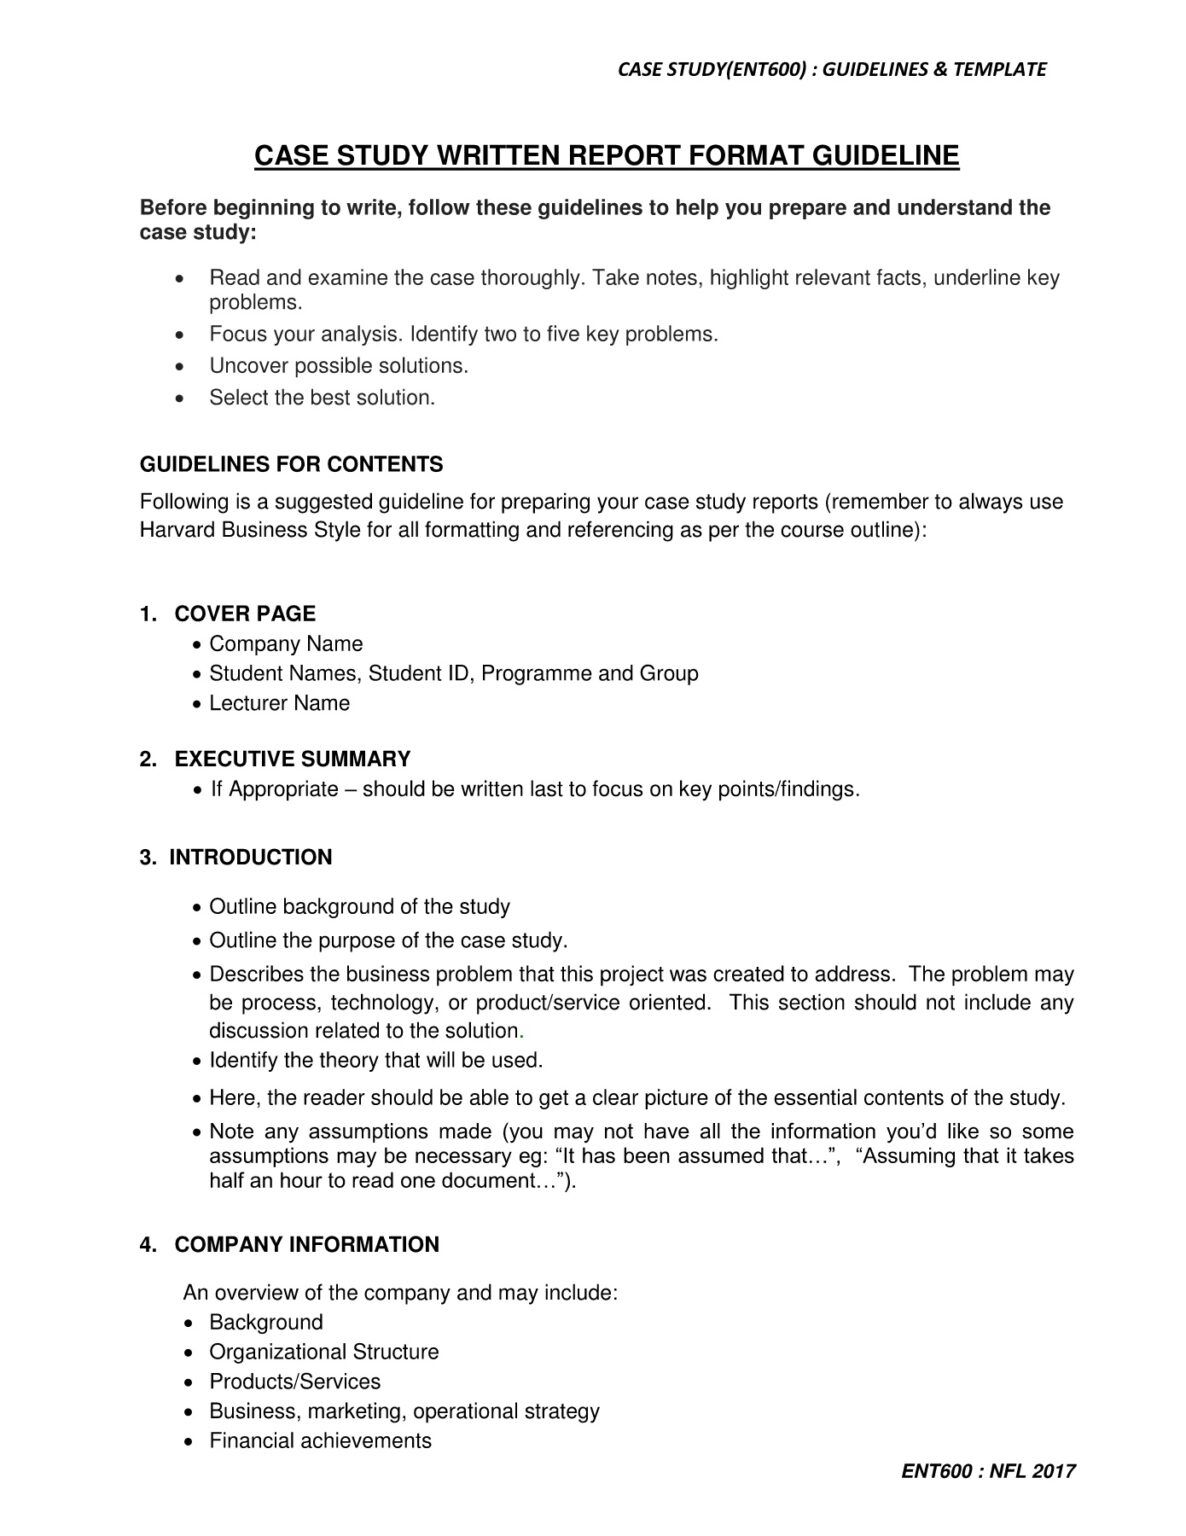 Ent600 Case Study Guidelines Template Pages 1 5 Text Intended For Report Content Page Template Contents Page Template Guideline Template Page Template